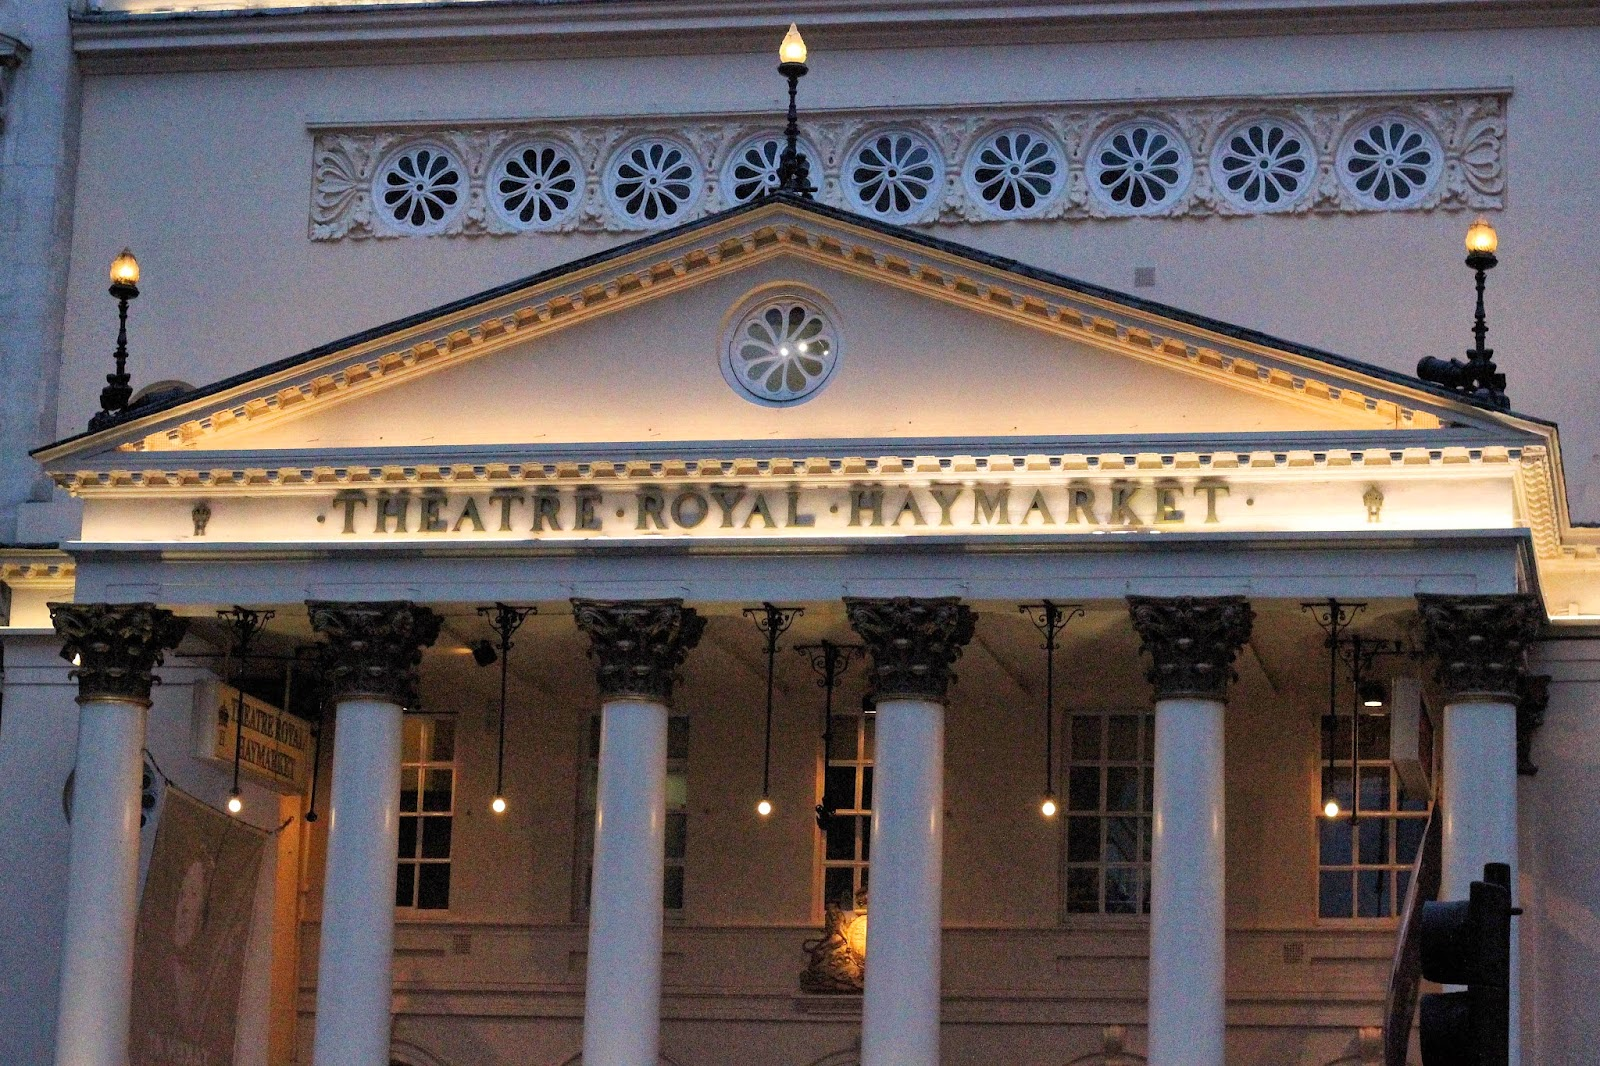 Theatre Royal Haymarket - Photograph by Art Style Love